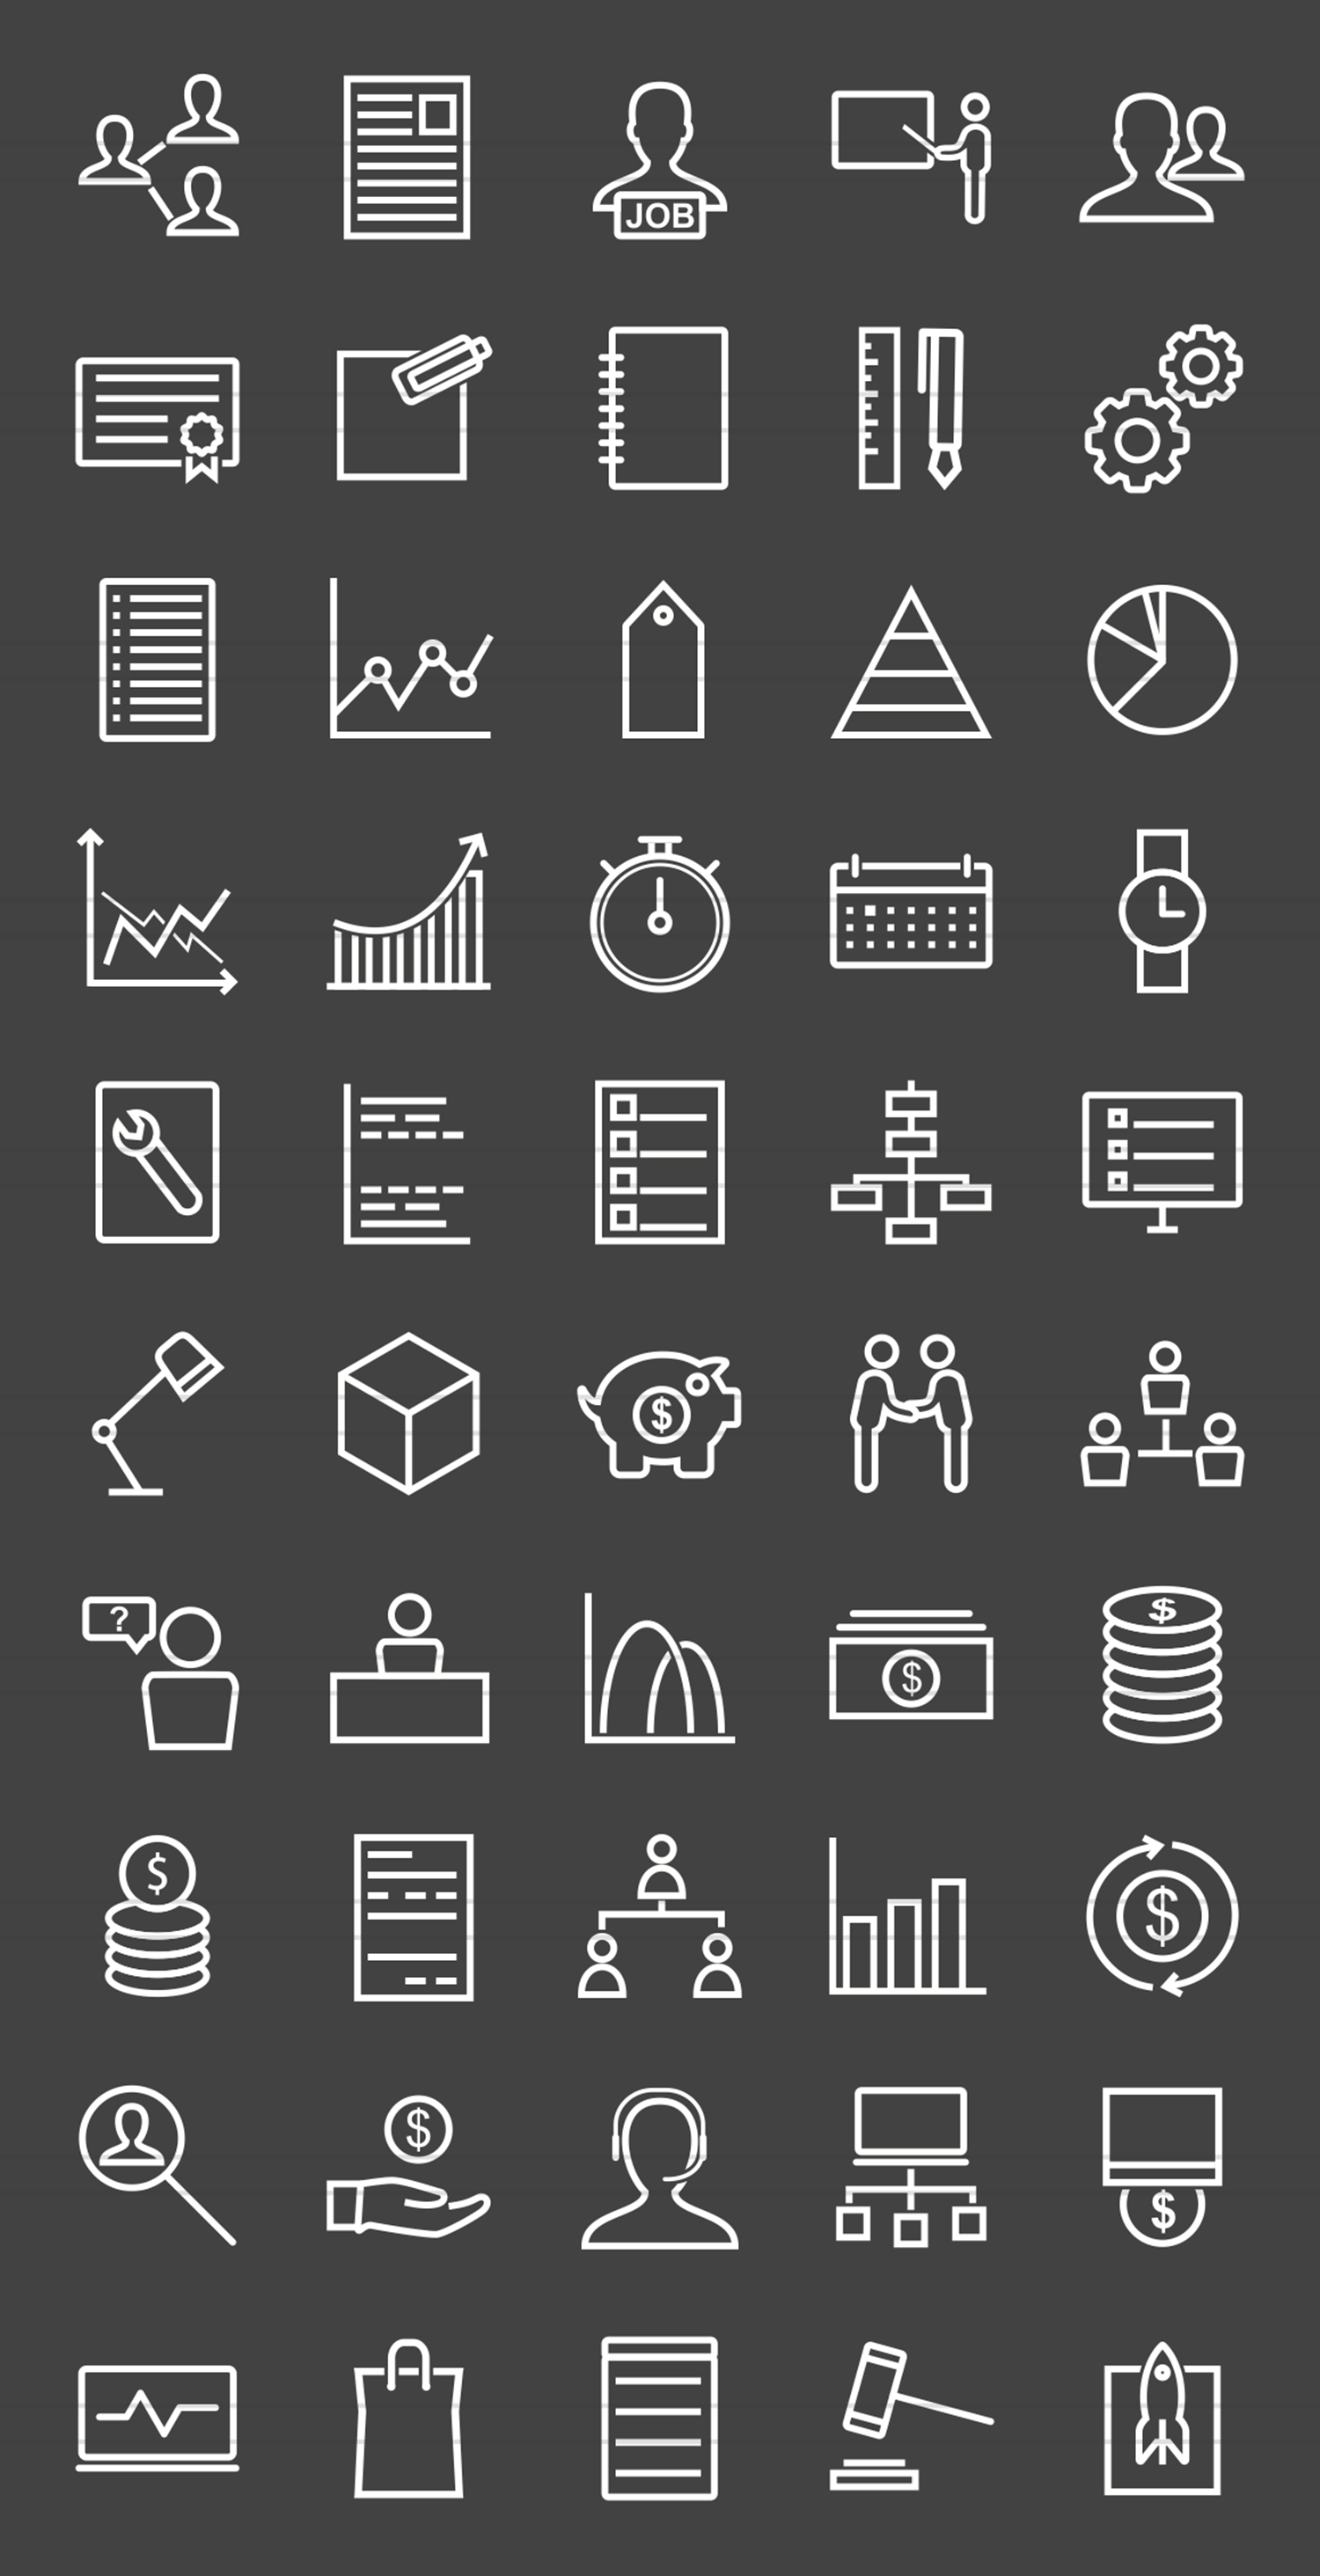 50 Business Management Line Inverted Icons example image 2